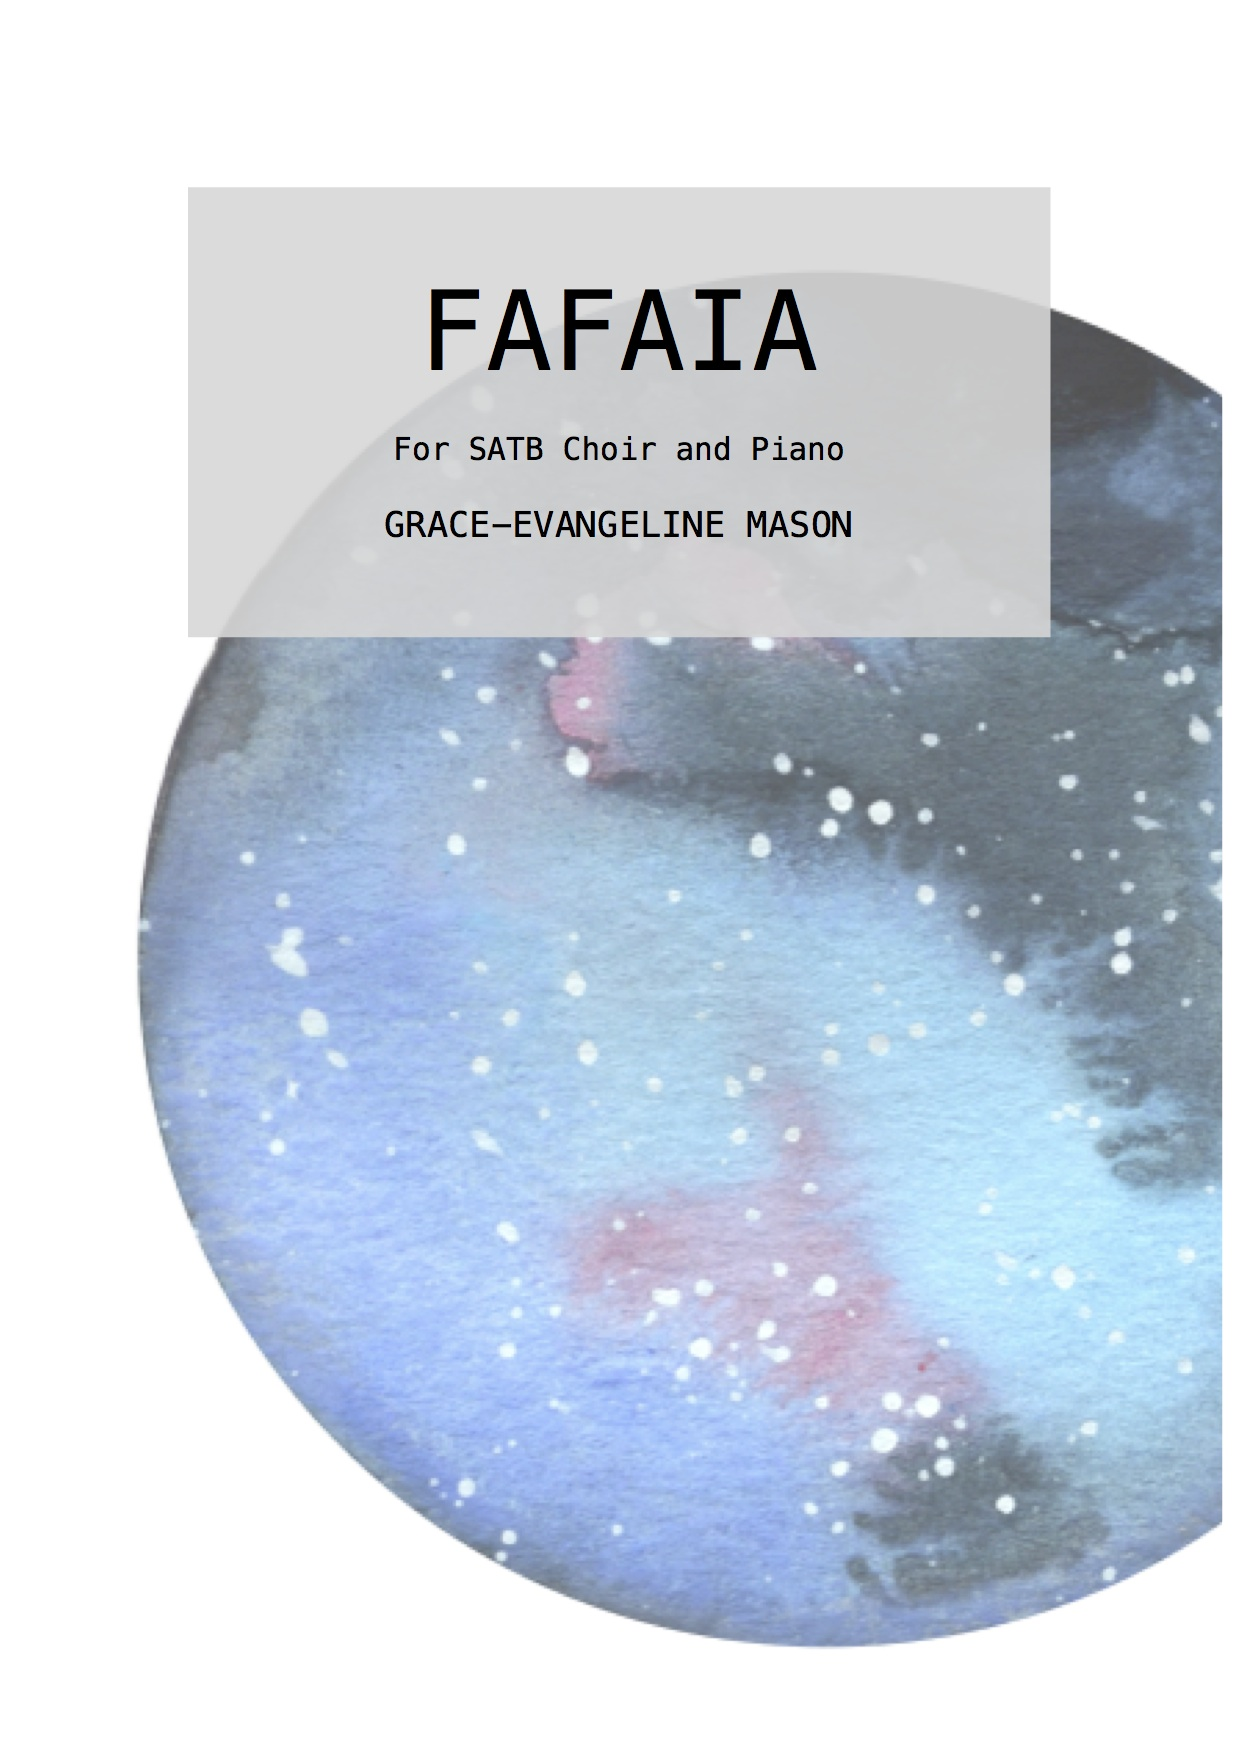 'FAFAIA' (2018) - For Choir and PianoDuration: 3'Commissioned for the LSO Community Choir through the LSO Discovery Panufnik Composers Scheme, generously supported by Helen Hamlyn and the Helen Hamlyn Trust. First Performed at LSO St Luke's, London, 16th November 2018.'Fafaia' (2018) for choir and piano is a setting of the poem of the same name by the World War I poet, Rupert Brooke. Known for his somewhat idealistic portrayals of World War I, Brooke's poem is simple and reflective, which he wrote when he was in Saanapu in November 1913. It can be interpreted to be about shared experiences, however fleeting, befitting to both war comrades as well as wider human relationships. ©G.E.M.2018©Cover Image: 'Fafaia' Painting by Grace-Evangeline Mason 2018